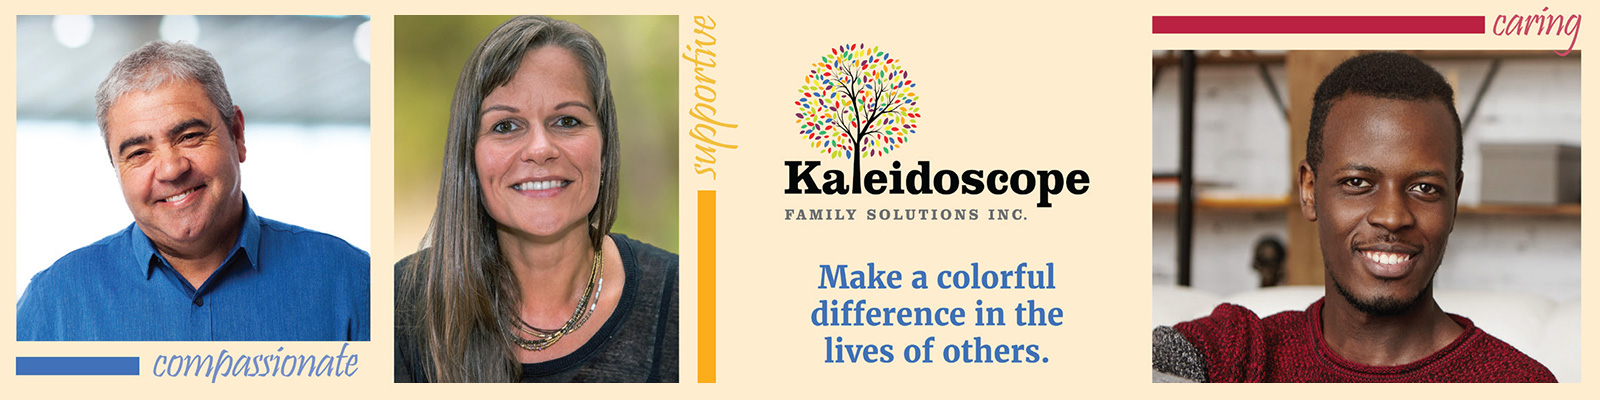 Kaleidoscope Family Solutions Inc - Direct Support Professional (DSP banner image